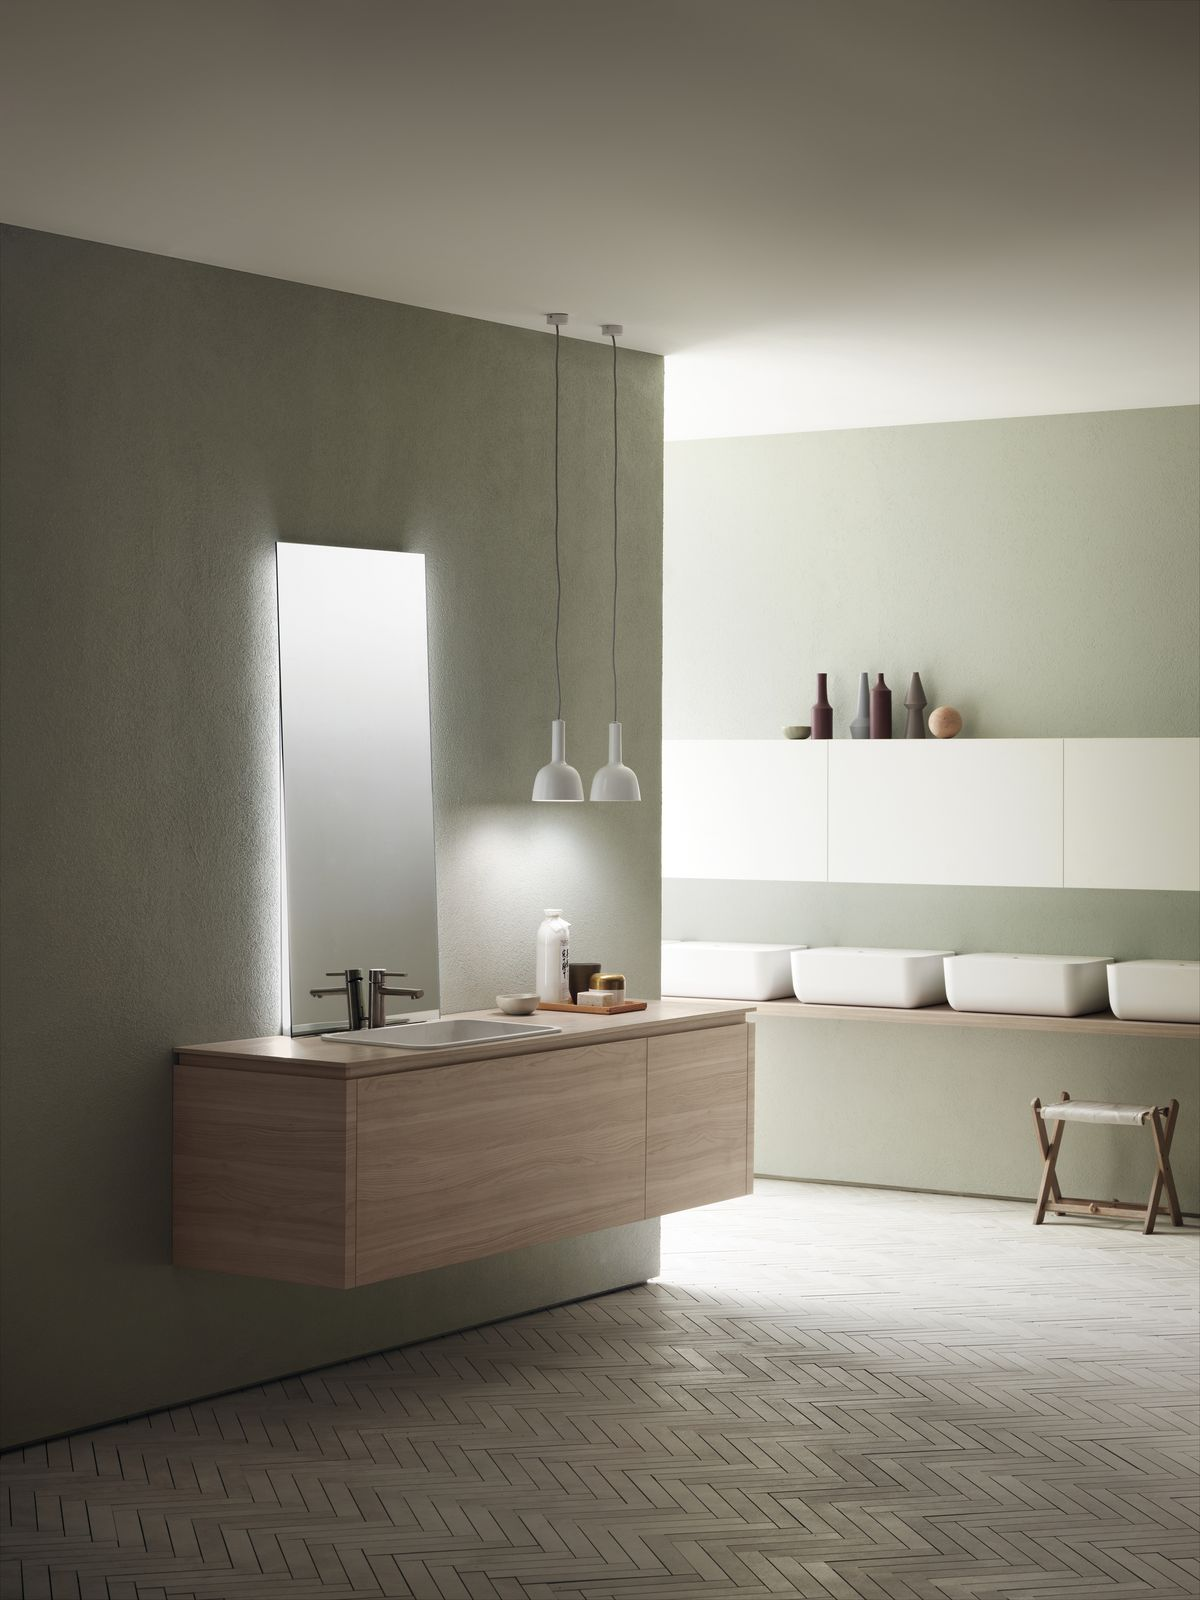 Scavolini Bathrooms Ki collection, design Nendo